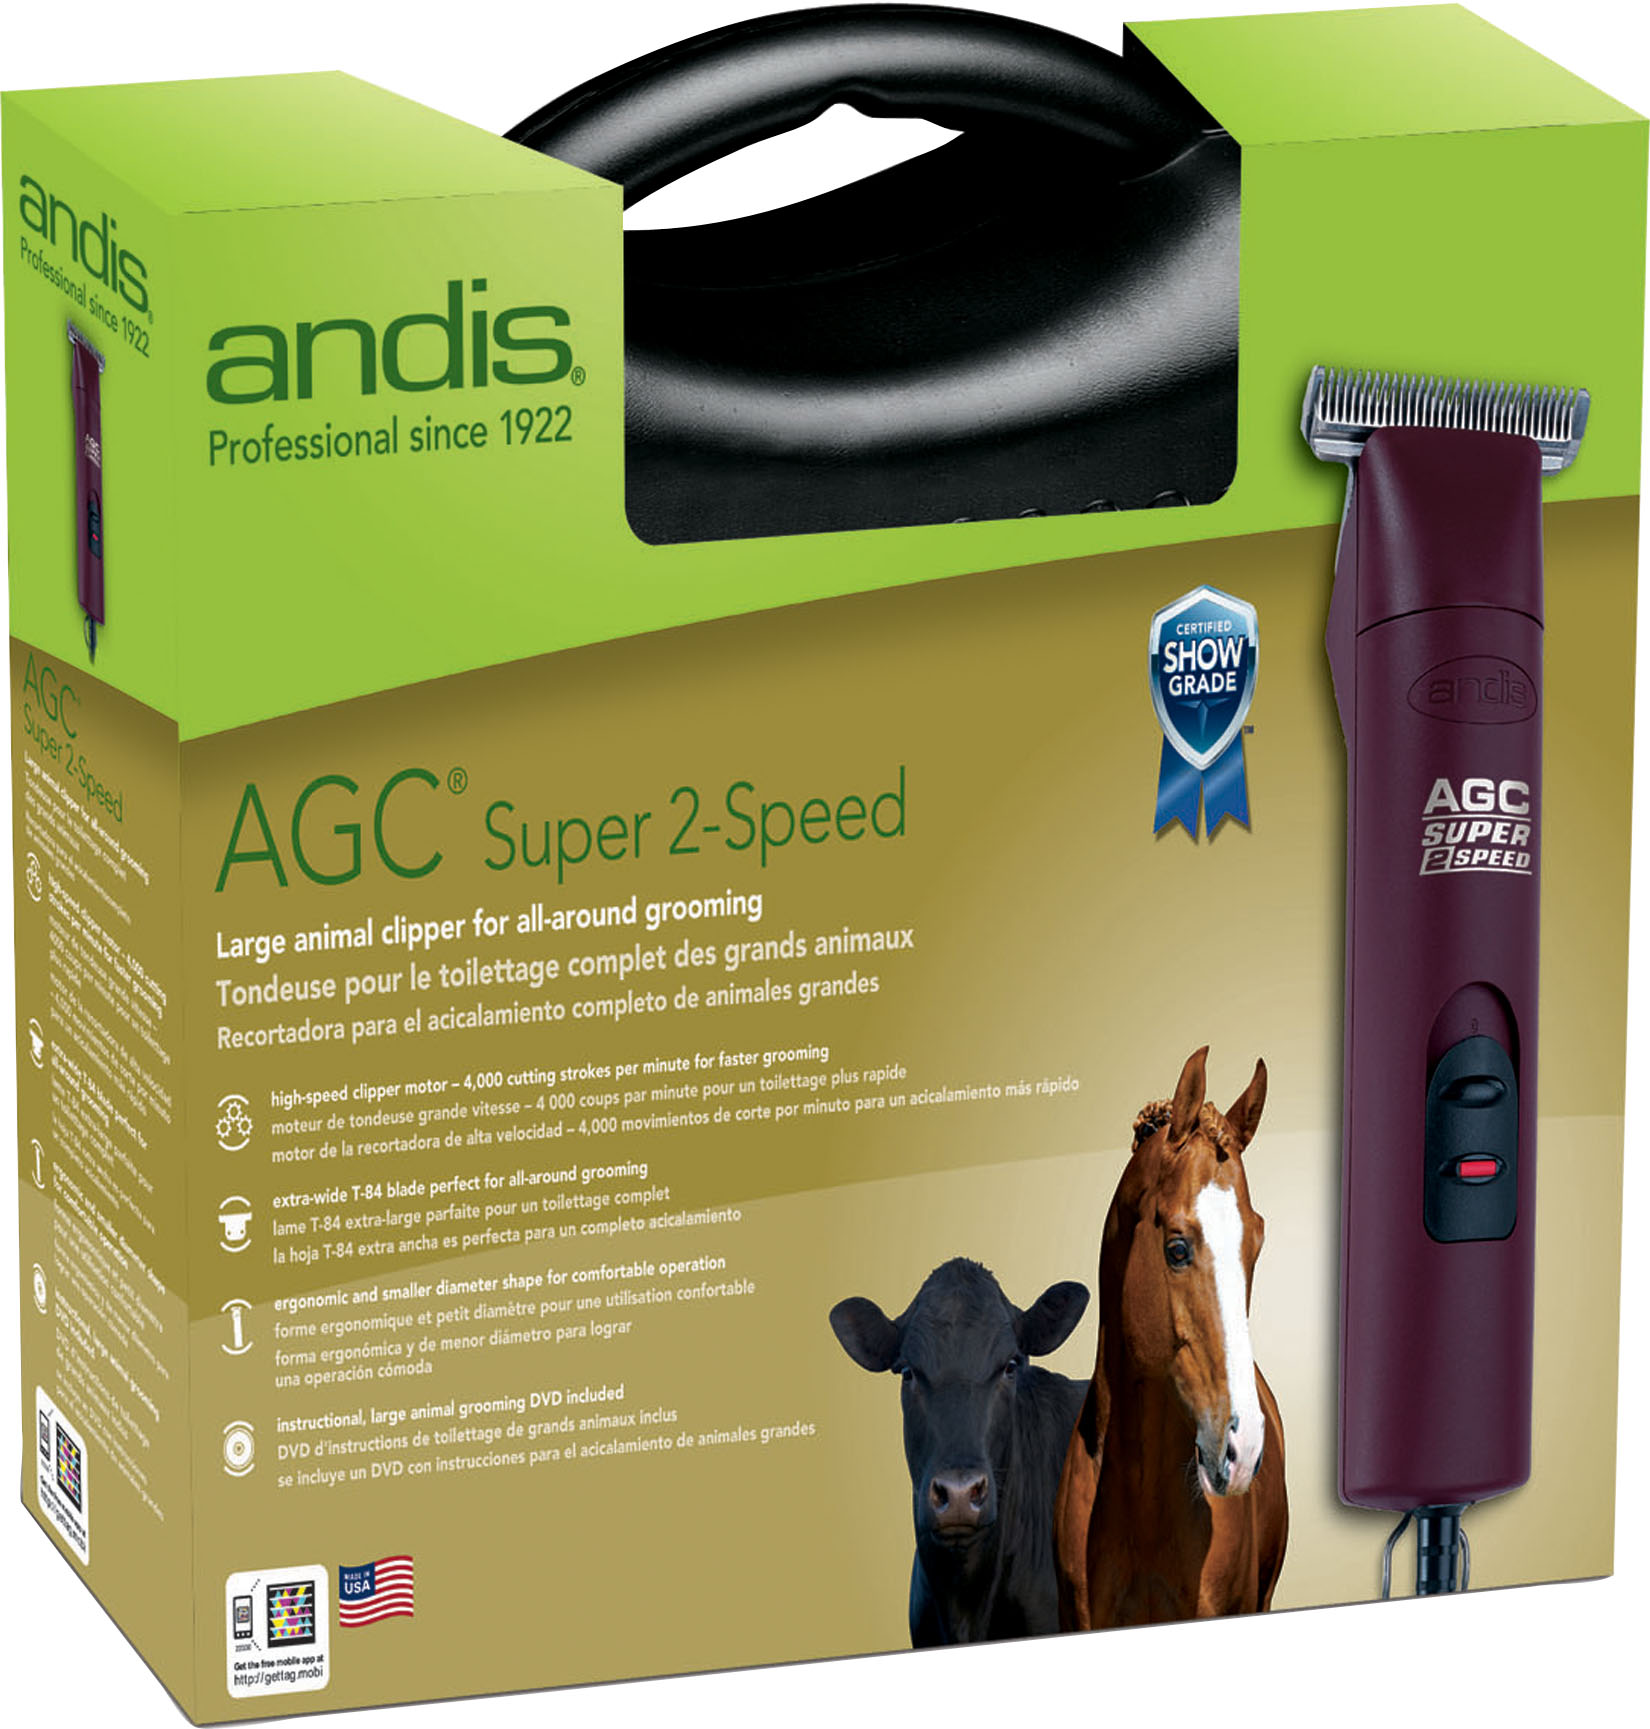 Andis Company-Agc2 Super 2-speed Horse Clipper With T-84 Blade- Burgundy 3400/4400 Spm